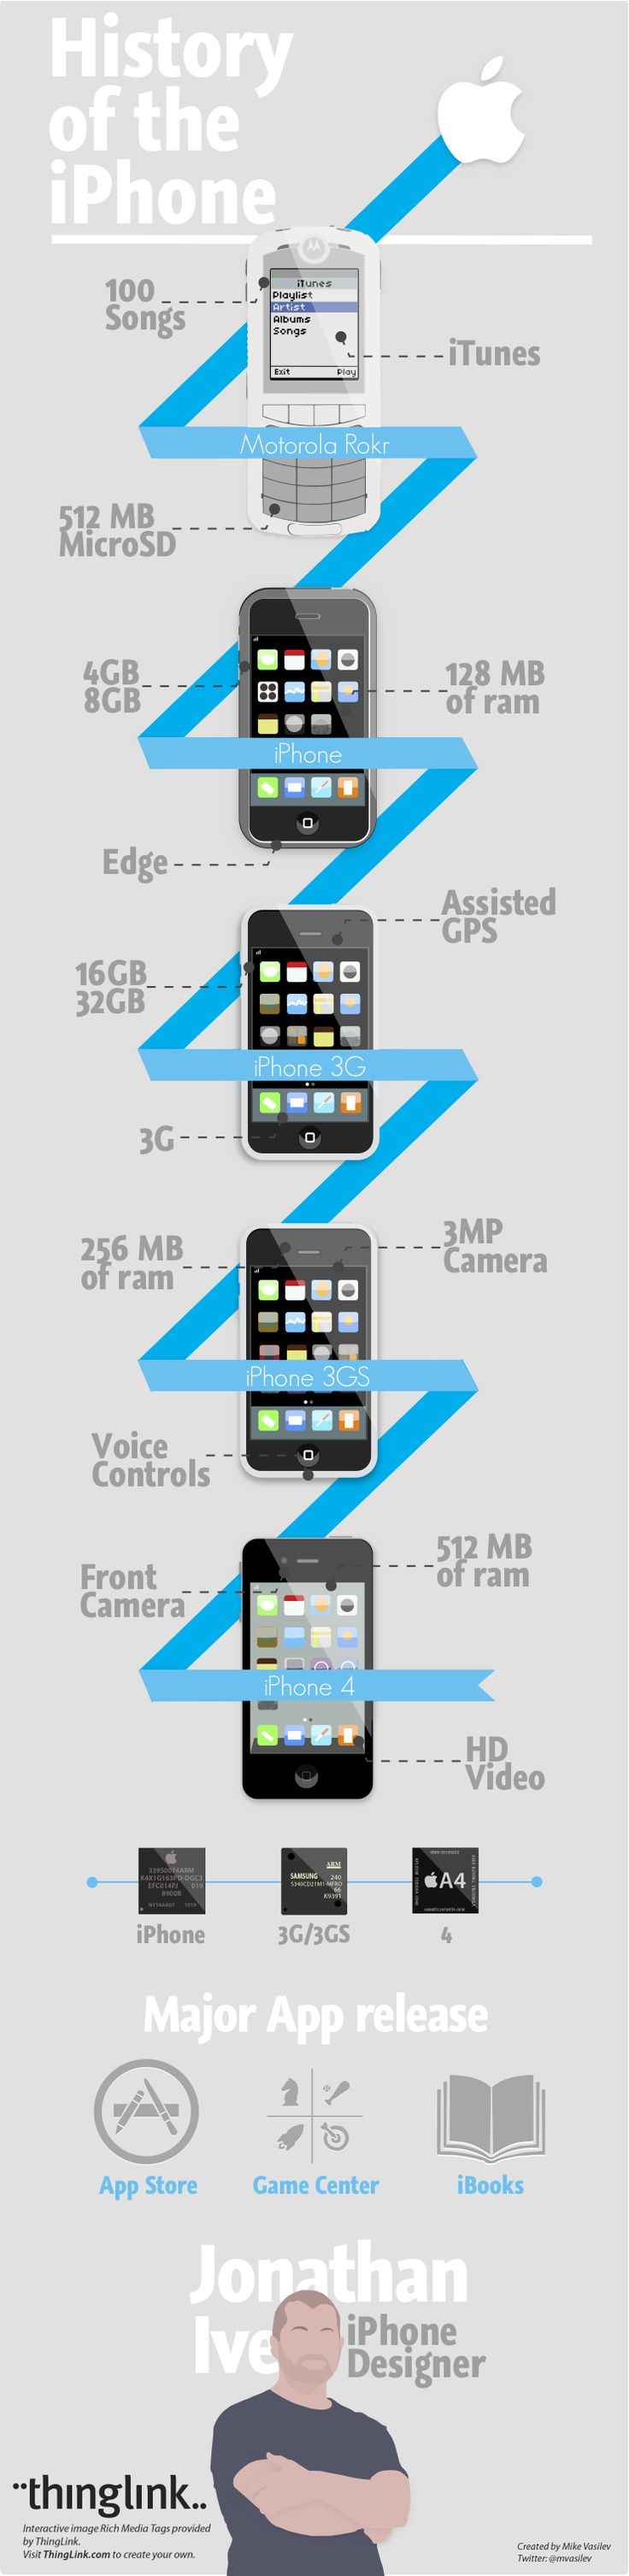 iphone history timeline 133 best images about timeline designs on 11925